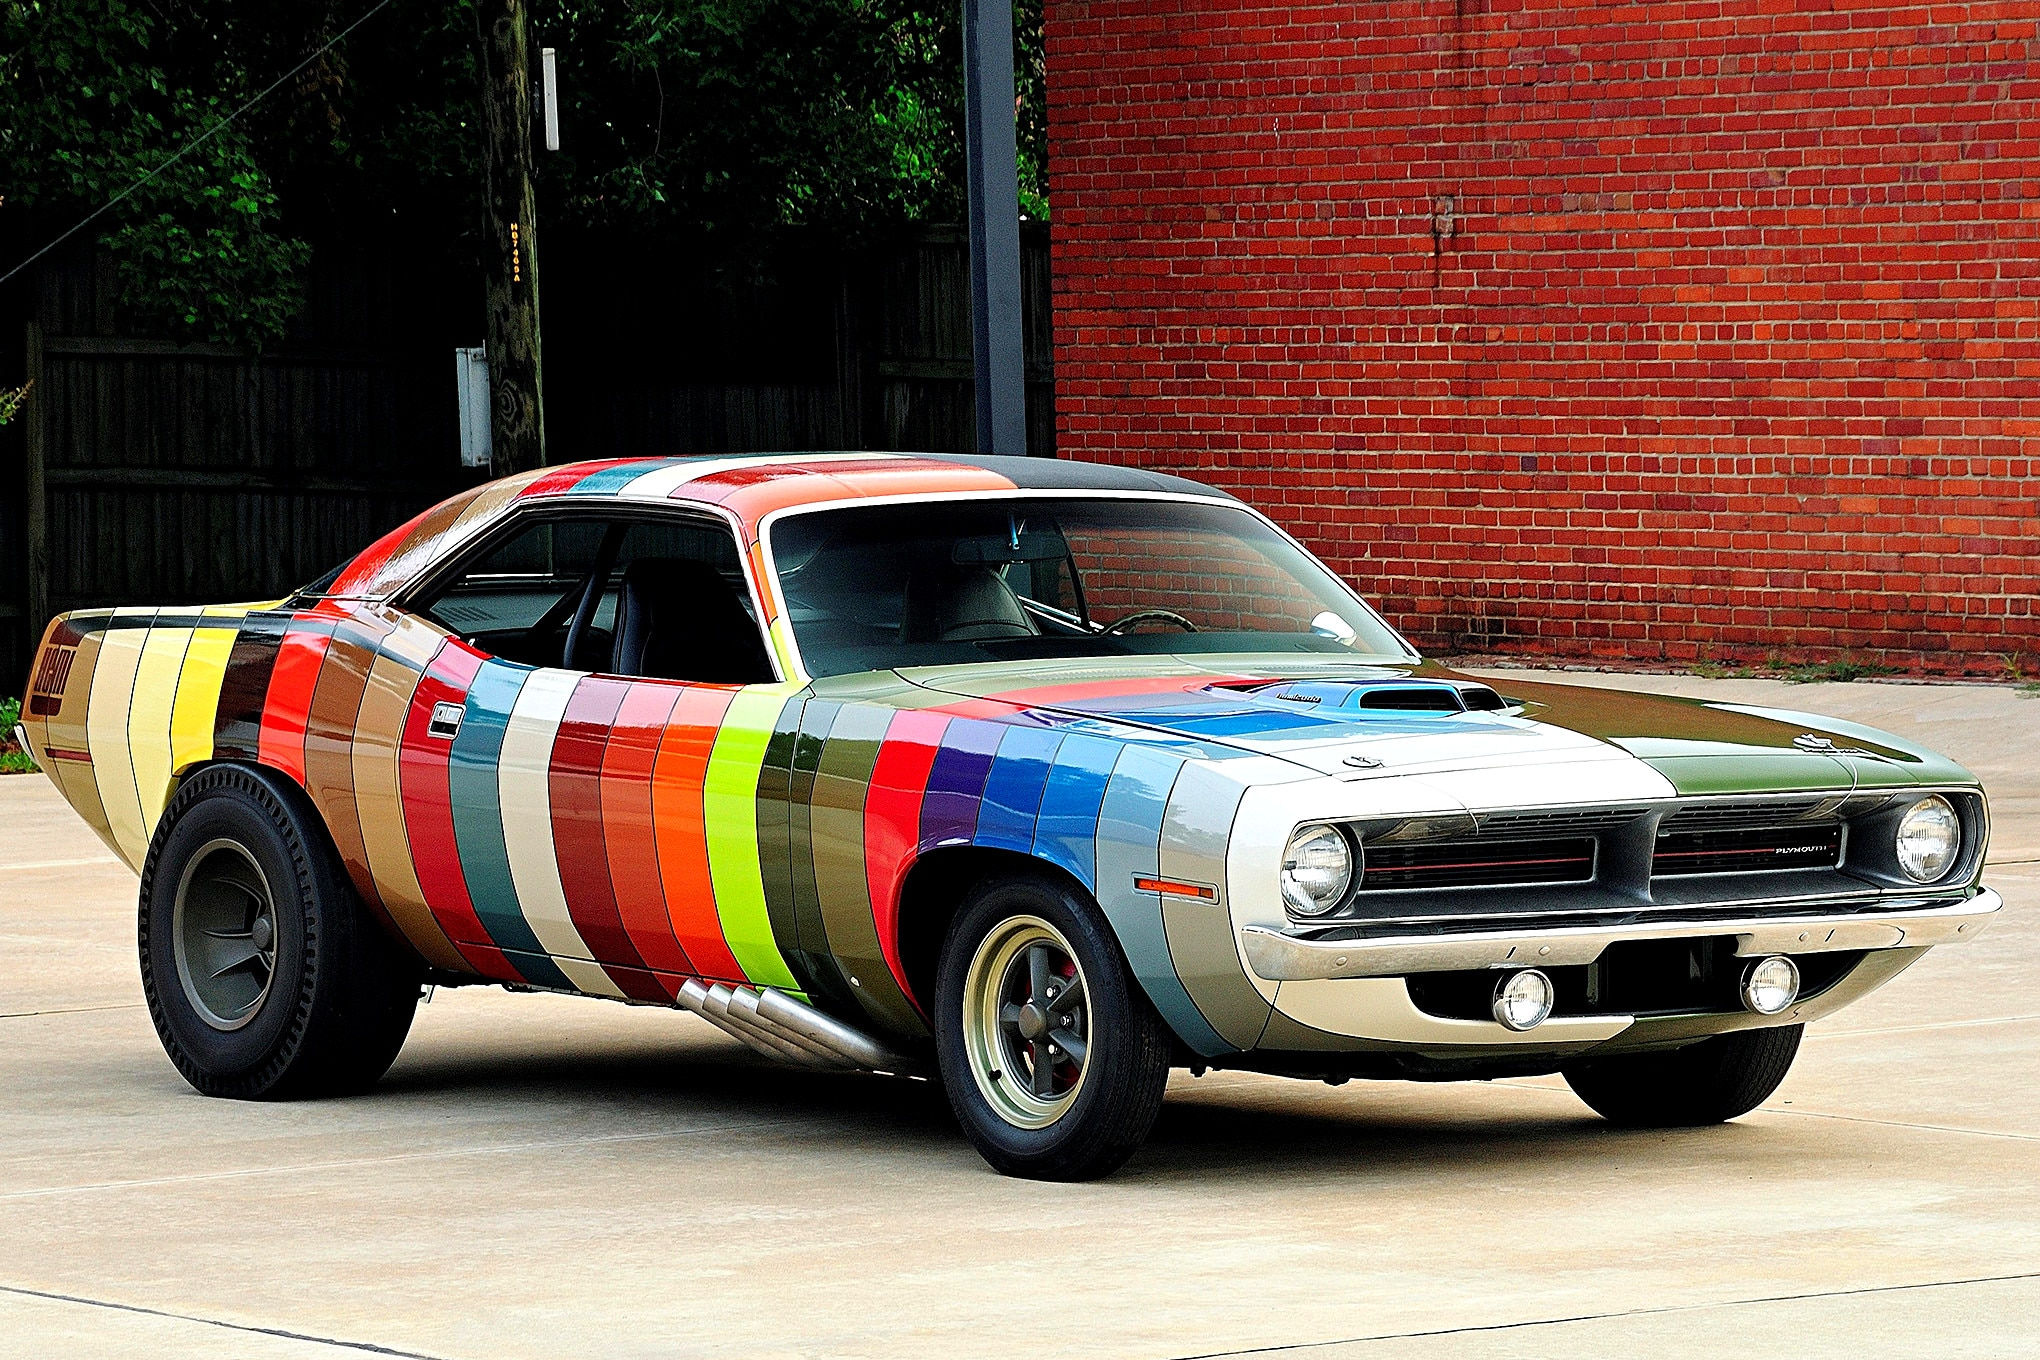 Indigo Car Wallpaper Is This Wild 1970 Plymouth Barracuda The Most Famous